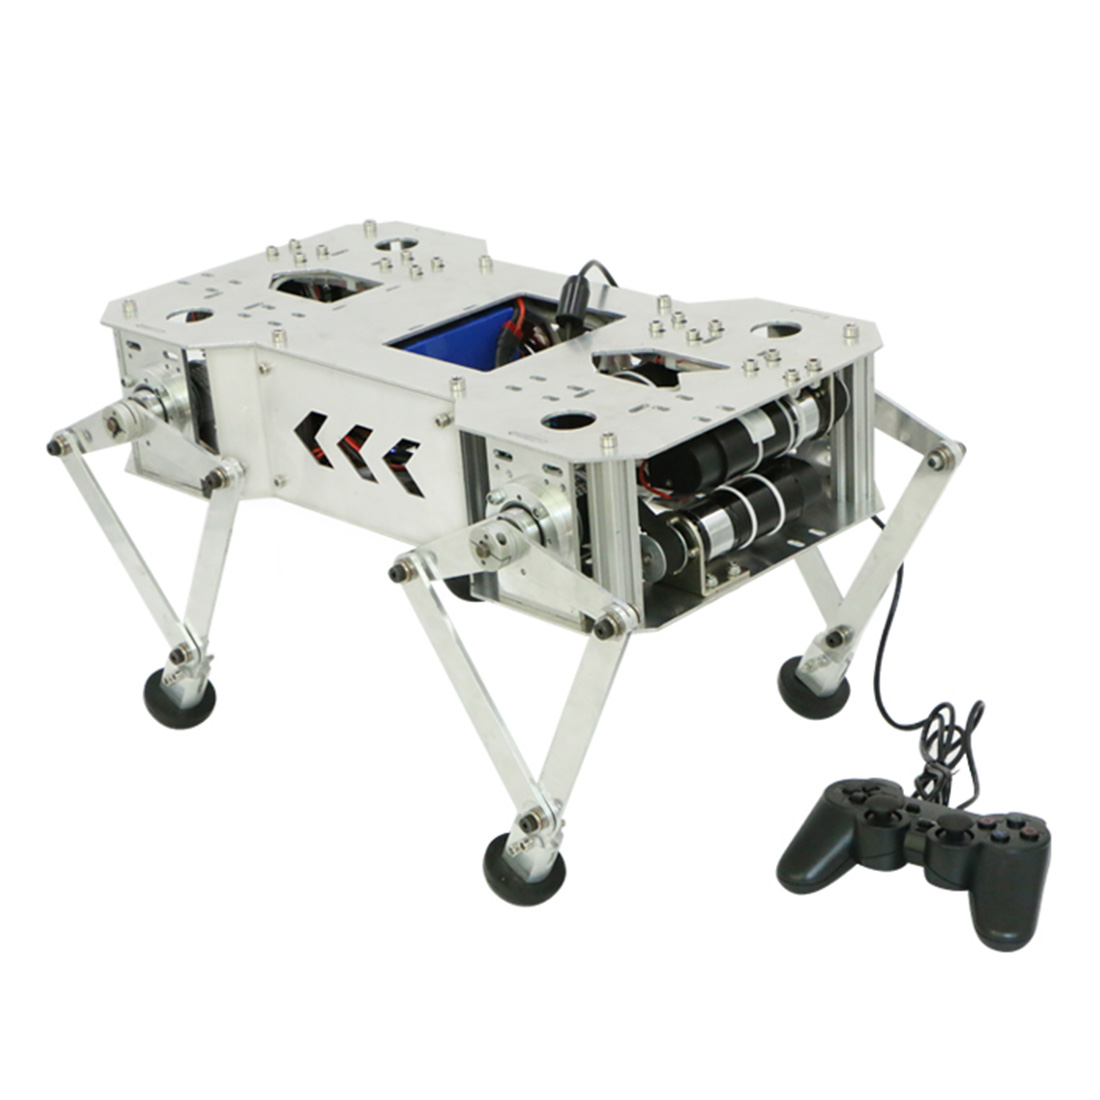 Programmable Metal Mechanical Dog Bionic Quadruped Crawling Robot Toy